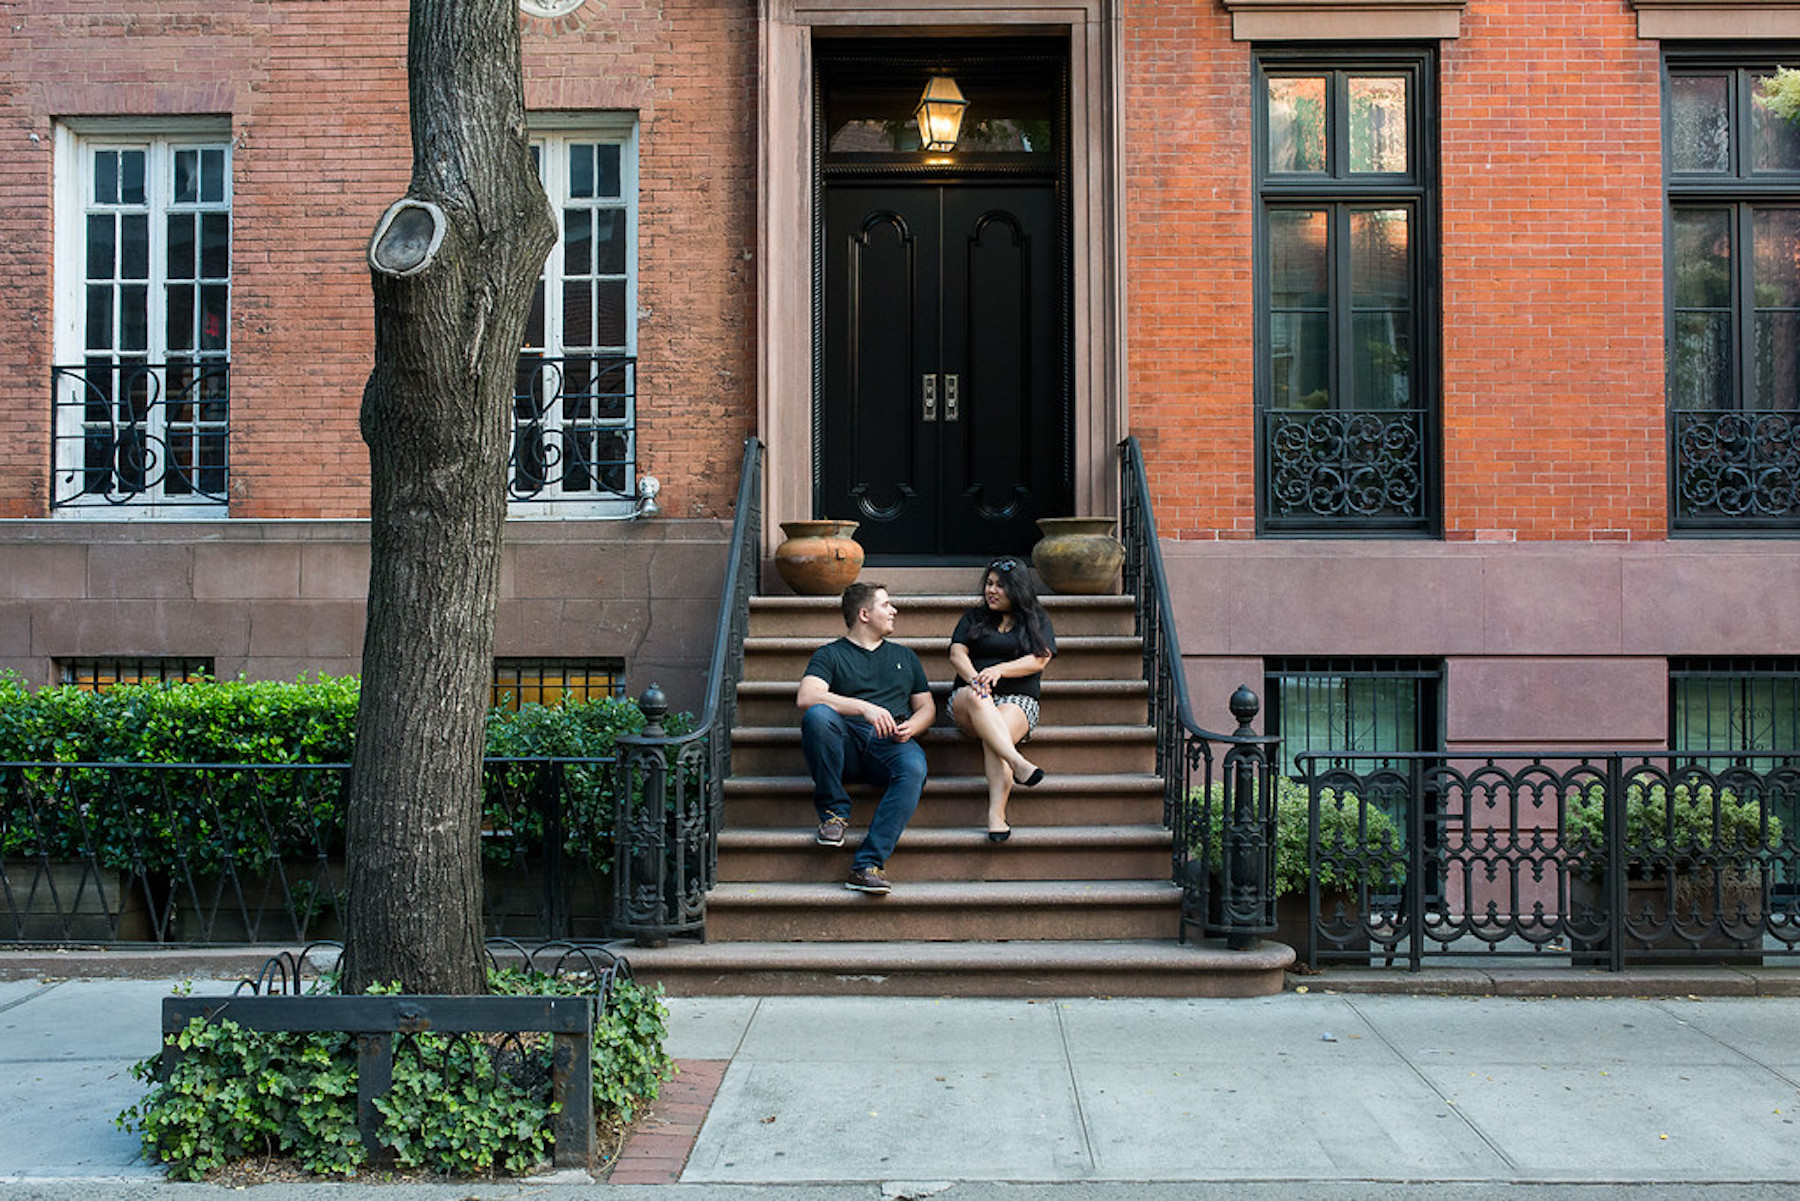 Couple sitting on steps and looking at each other in Greenwich Village, New York City USA